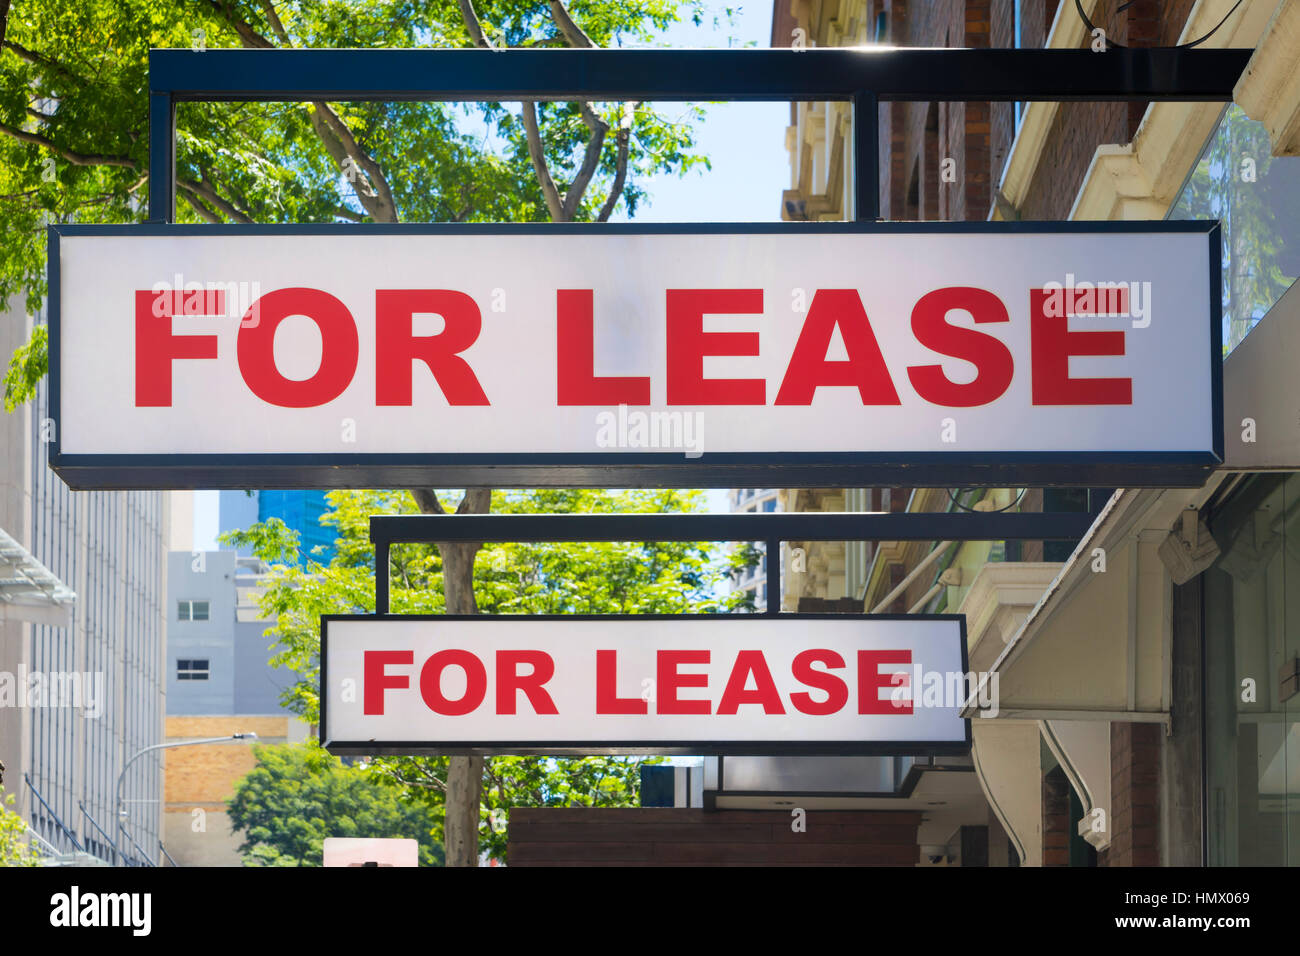 For Lease signs on display outside buildings - Stock Image